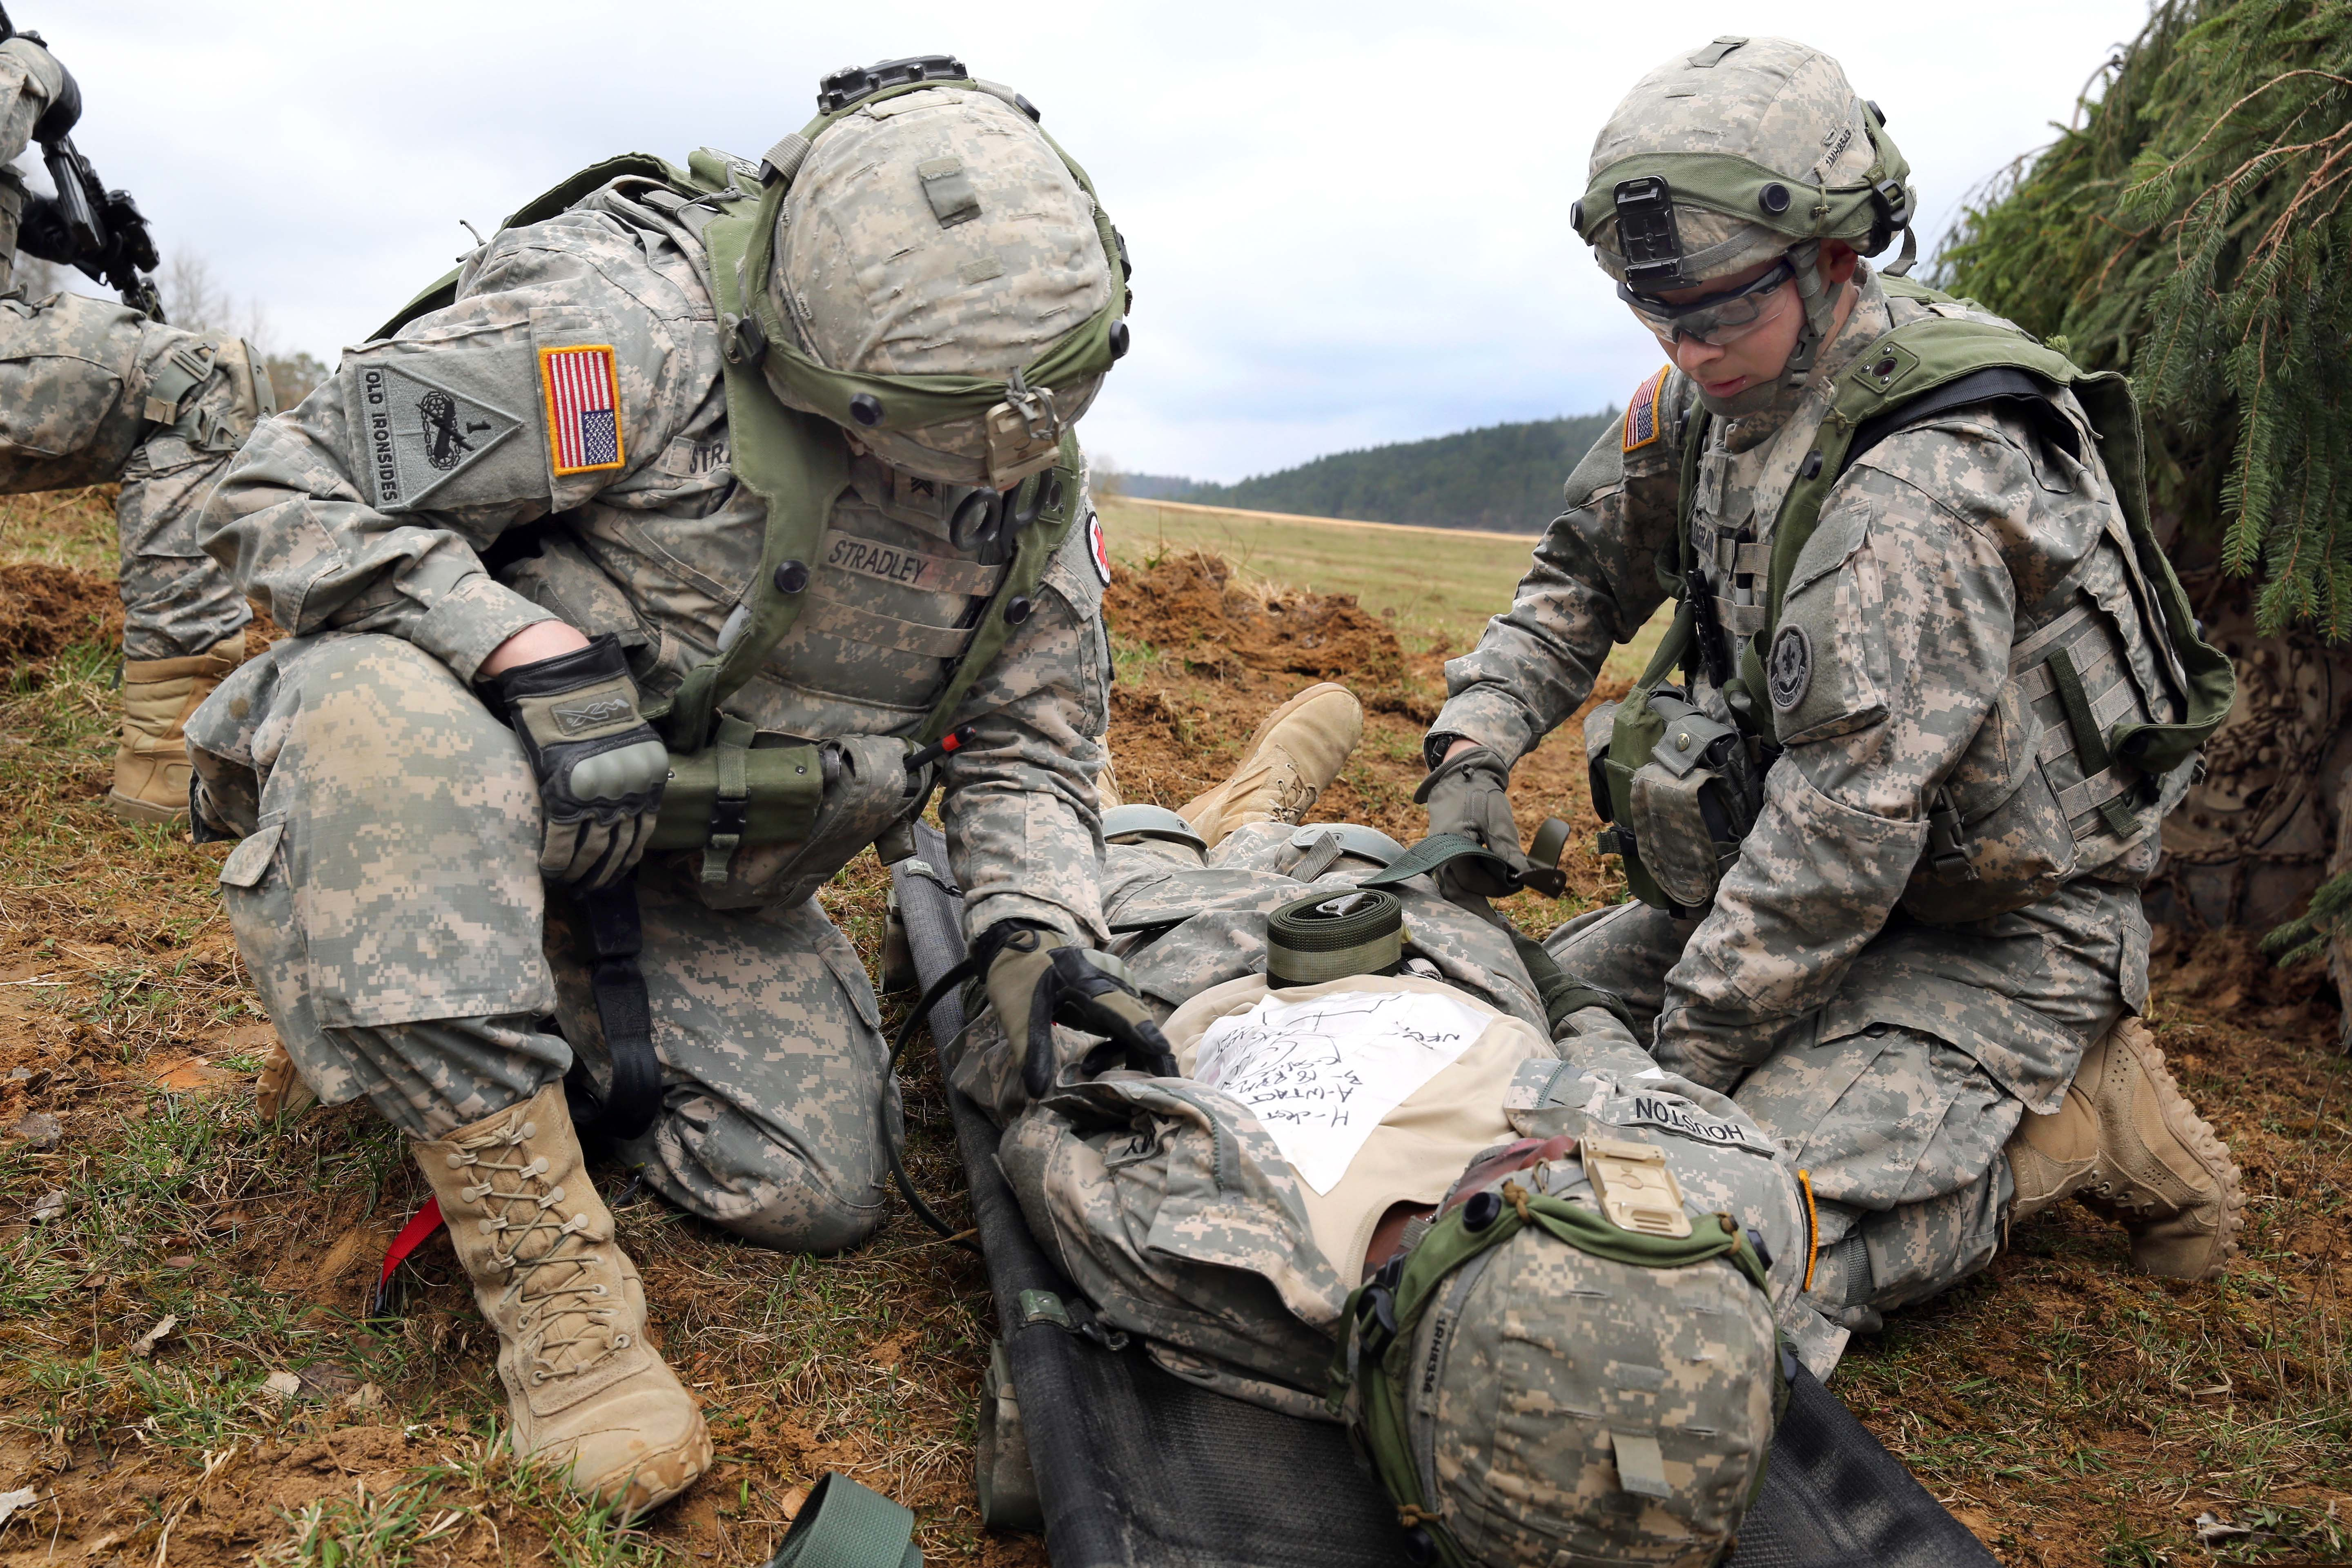 soldier readiness essay Subject: individual/unit medical readiness program 1 unit readiness is directly related to individual soldier readiness.